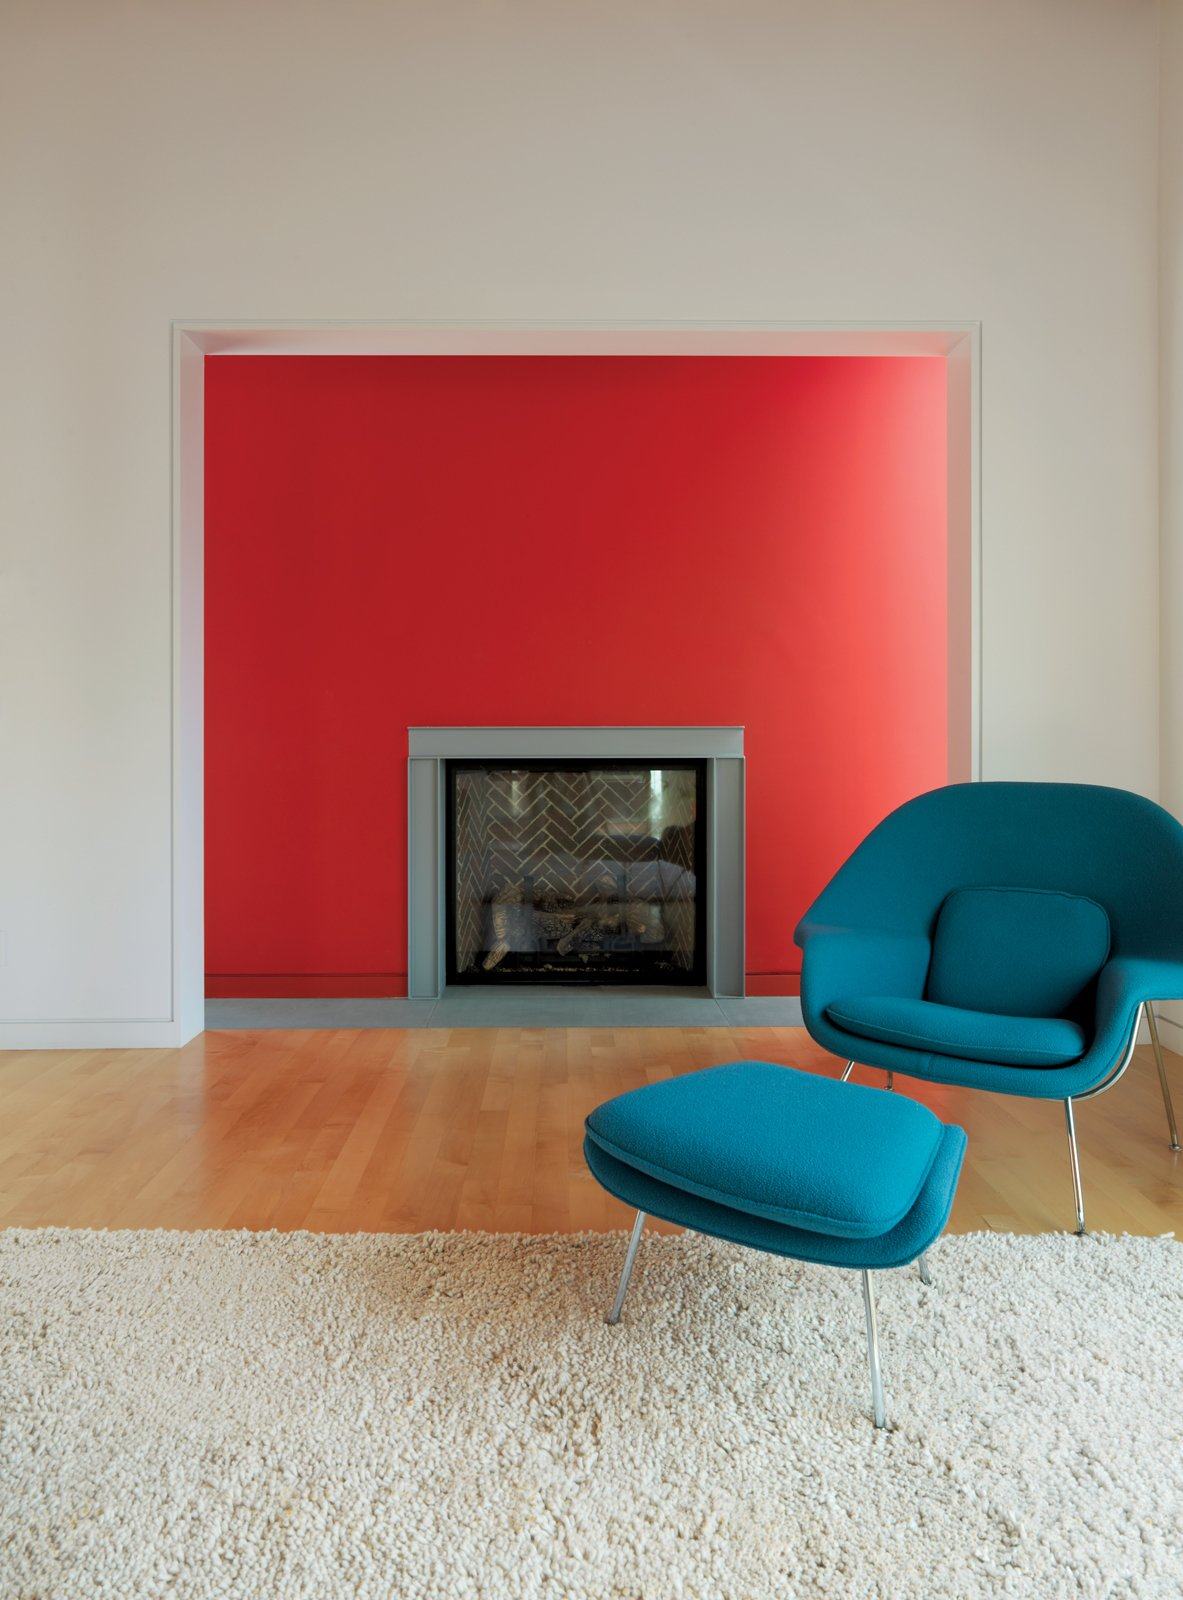 Living Room, Standard Layout Fireplace, Light Hardwood Floor, Rug Floor, and Chair In the living room, Fashandi enjoys lounging in the Saarinen Womb chair by Knoll near the fireplace. The red wall is flanked by thin windows, causing it to glow in the sunlight.  Photo 9 of 10 in Design Classic: Eero Saarinen's Womb Chair from Family Matters